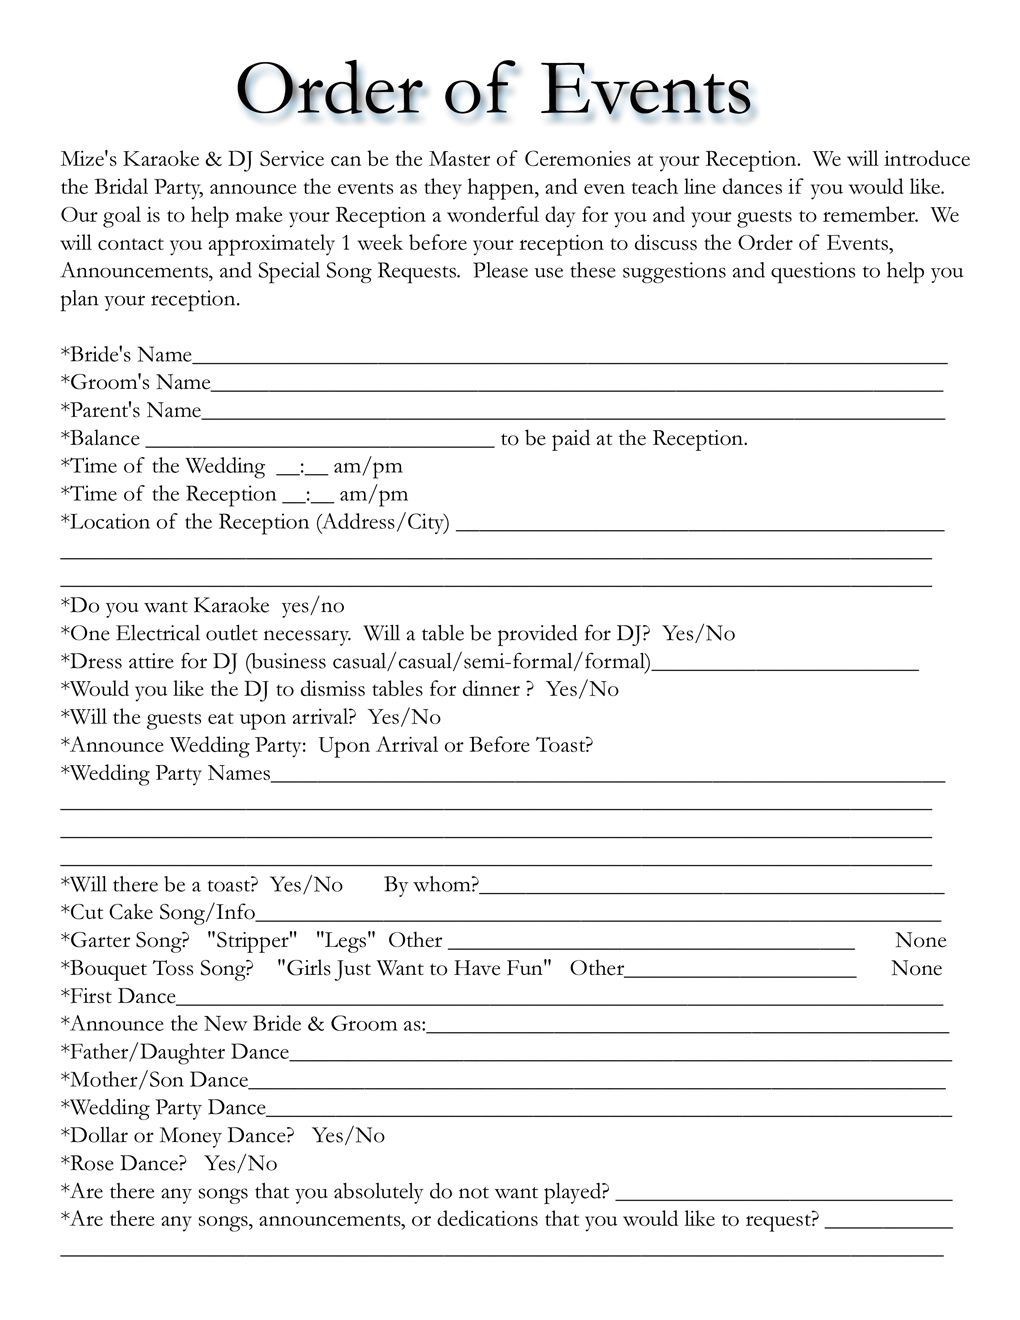 Wedding Itinerary Templates Free | Wedding Template | Projects To - Free Printable Itinerary